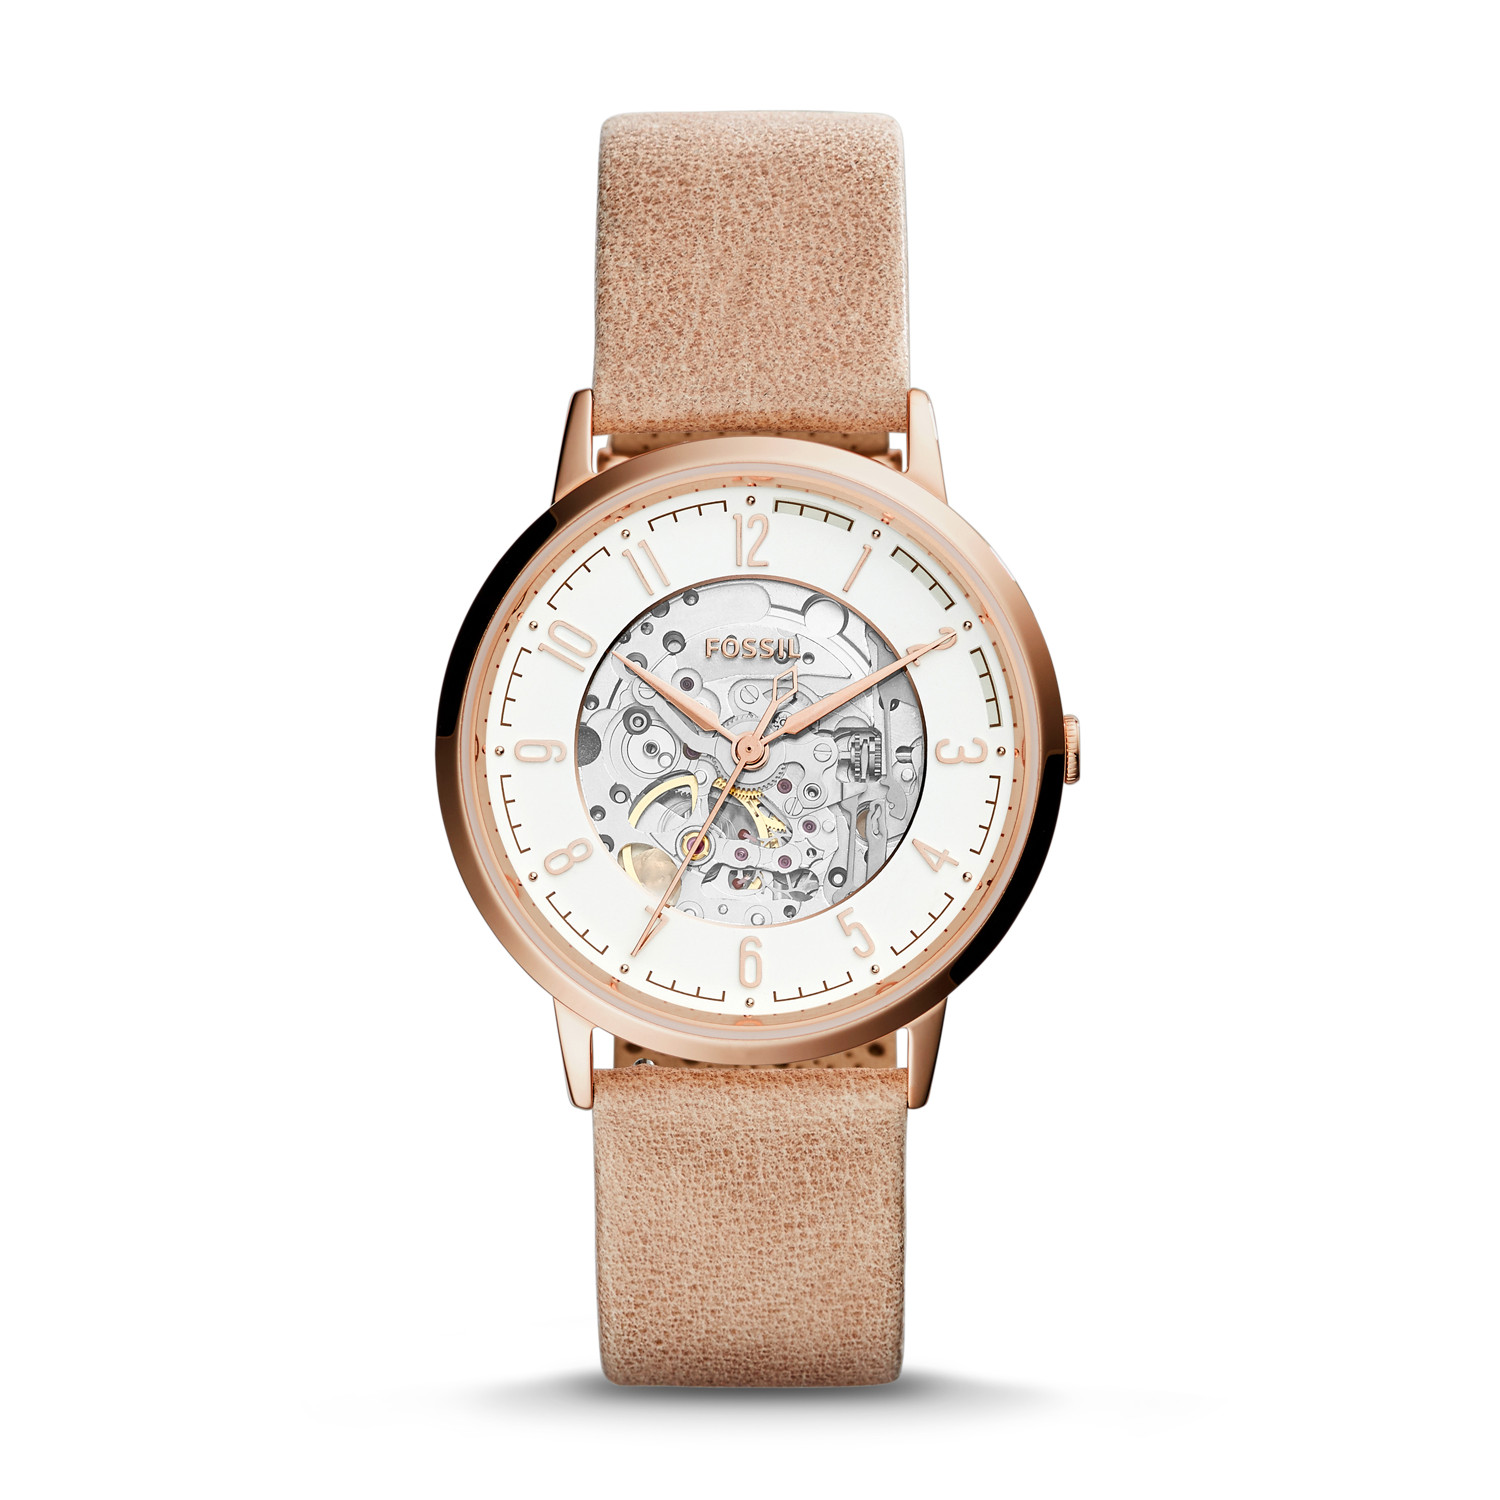 q pdpzoom sku en aemresponsive watches leather venture au main sand fossil gen products smartwatch